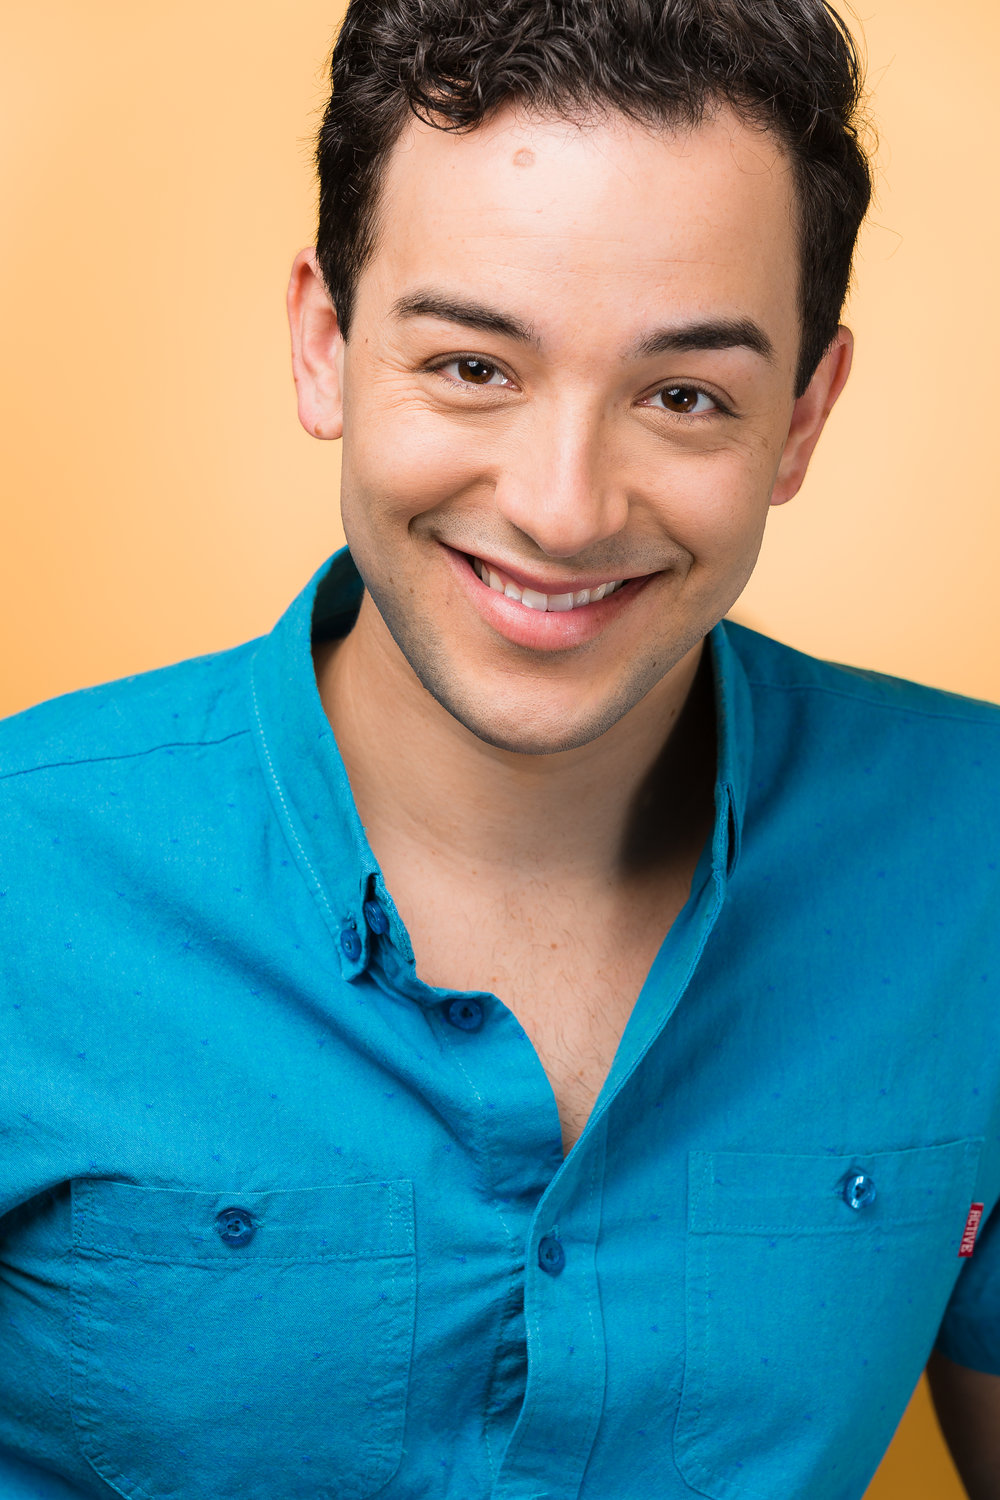 Jace Rotunno Headshots-139-Edit.jpg